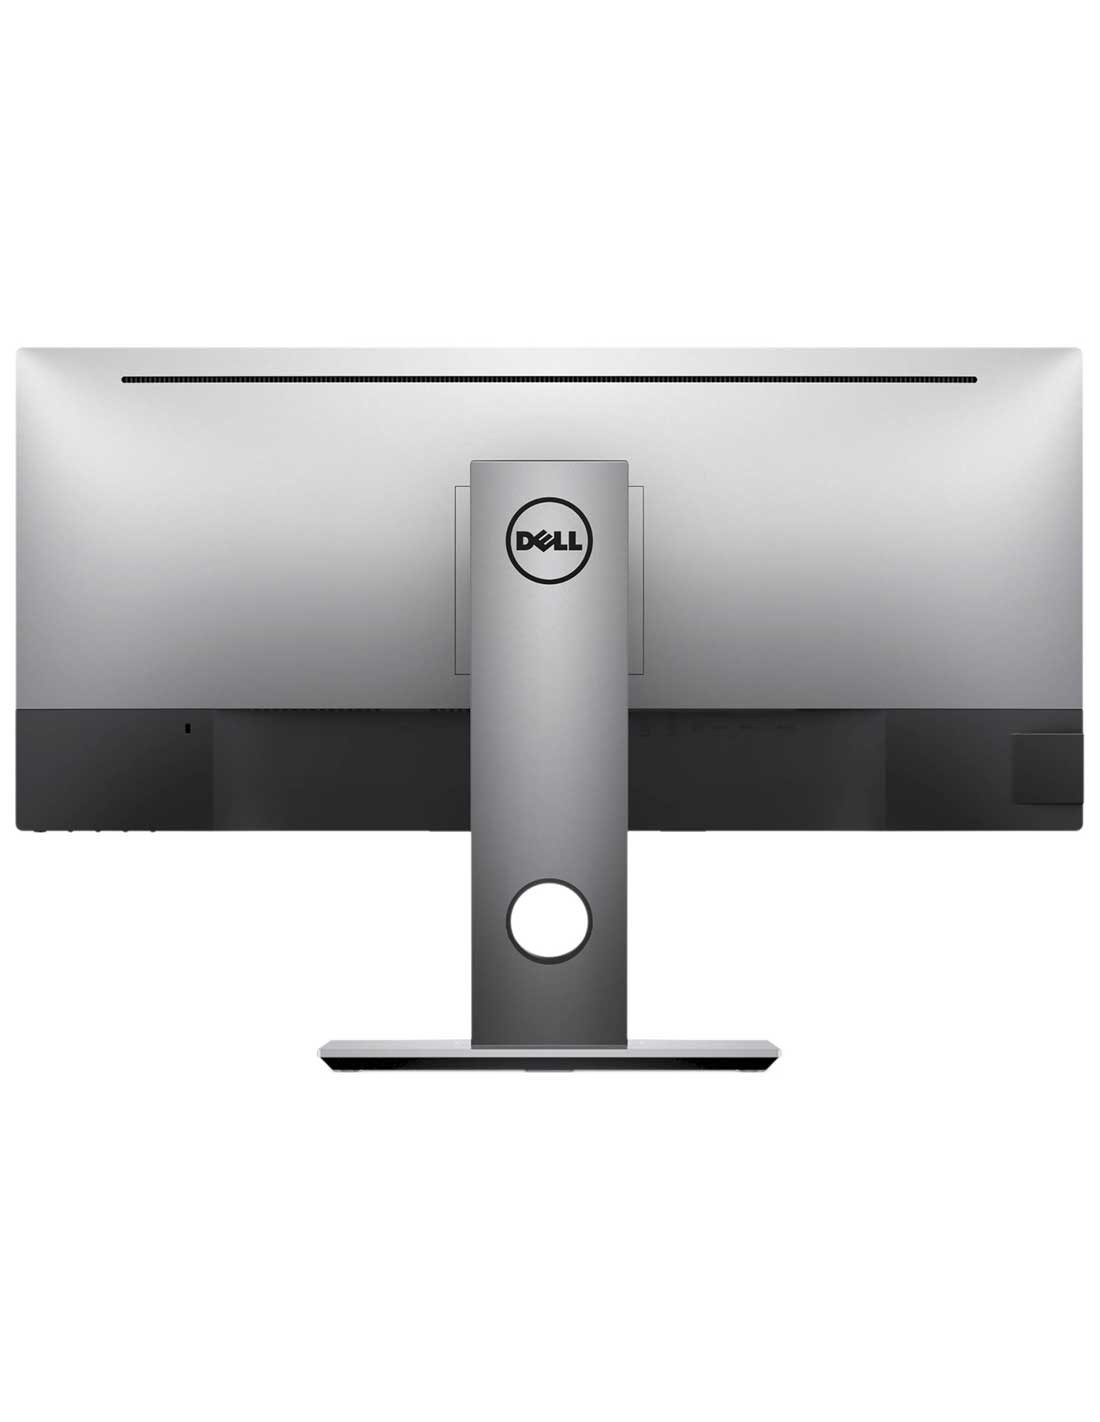 Dell UltraSharp 29-inch Monitor U2917W images and photos in Dubai online store